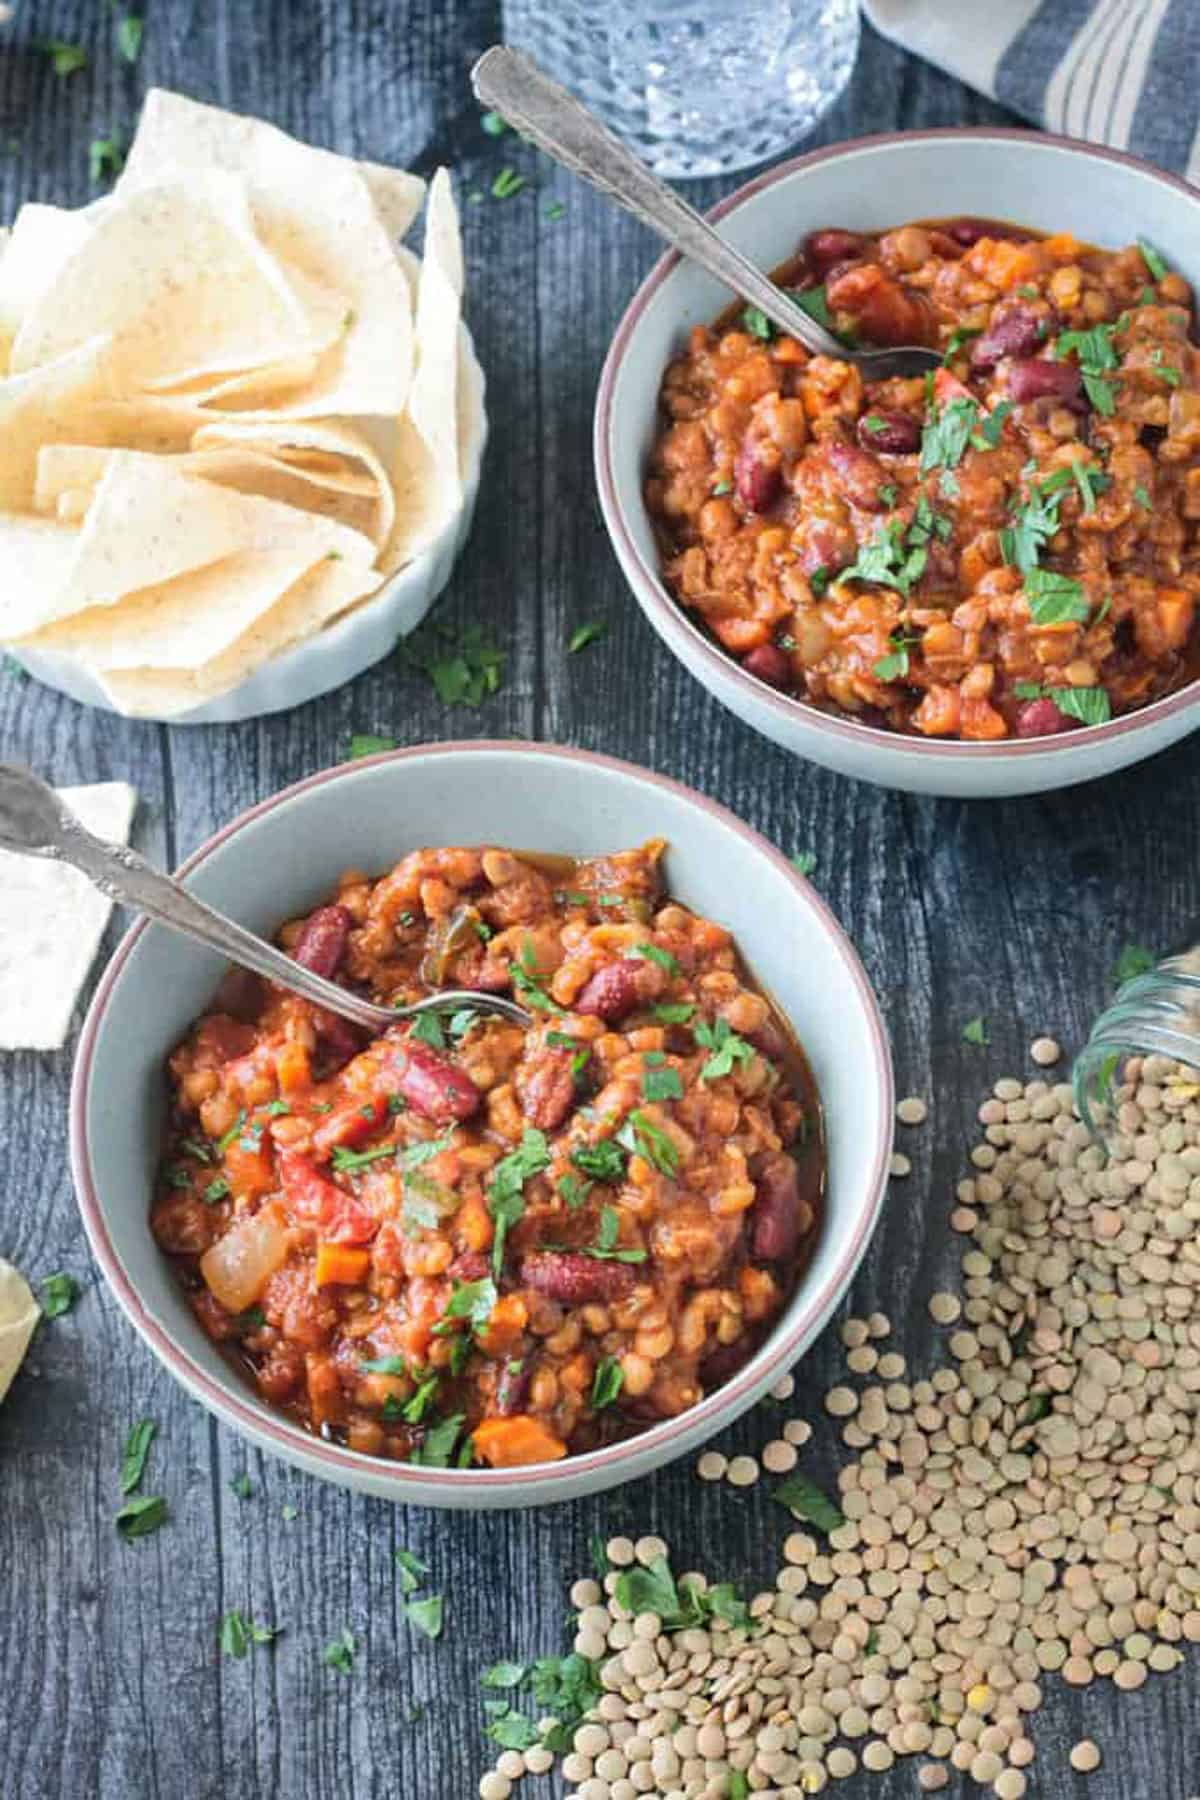 Spoon in a bowl of thick lentil chili.